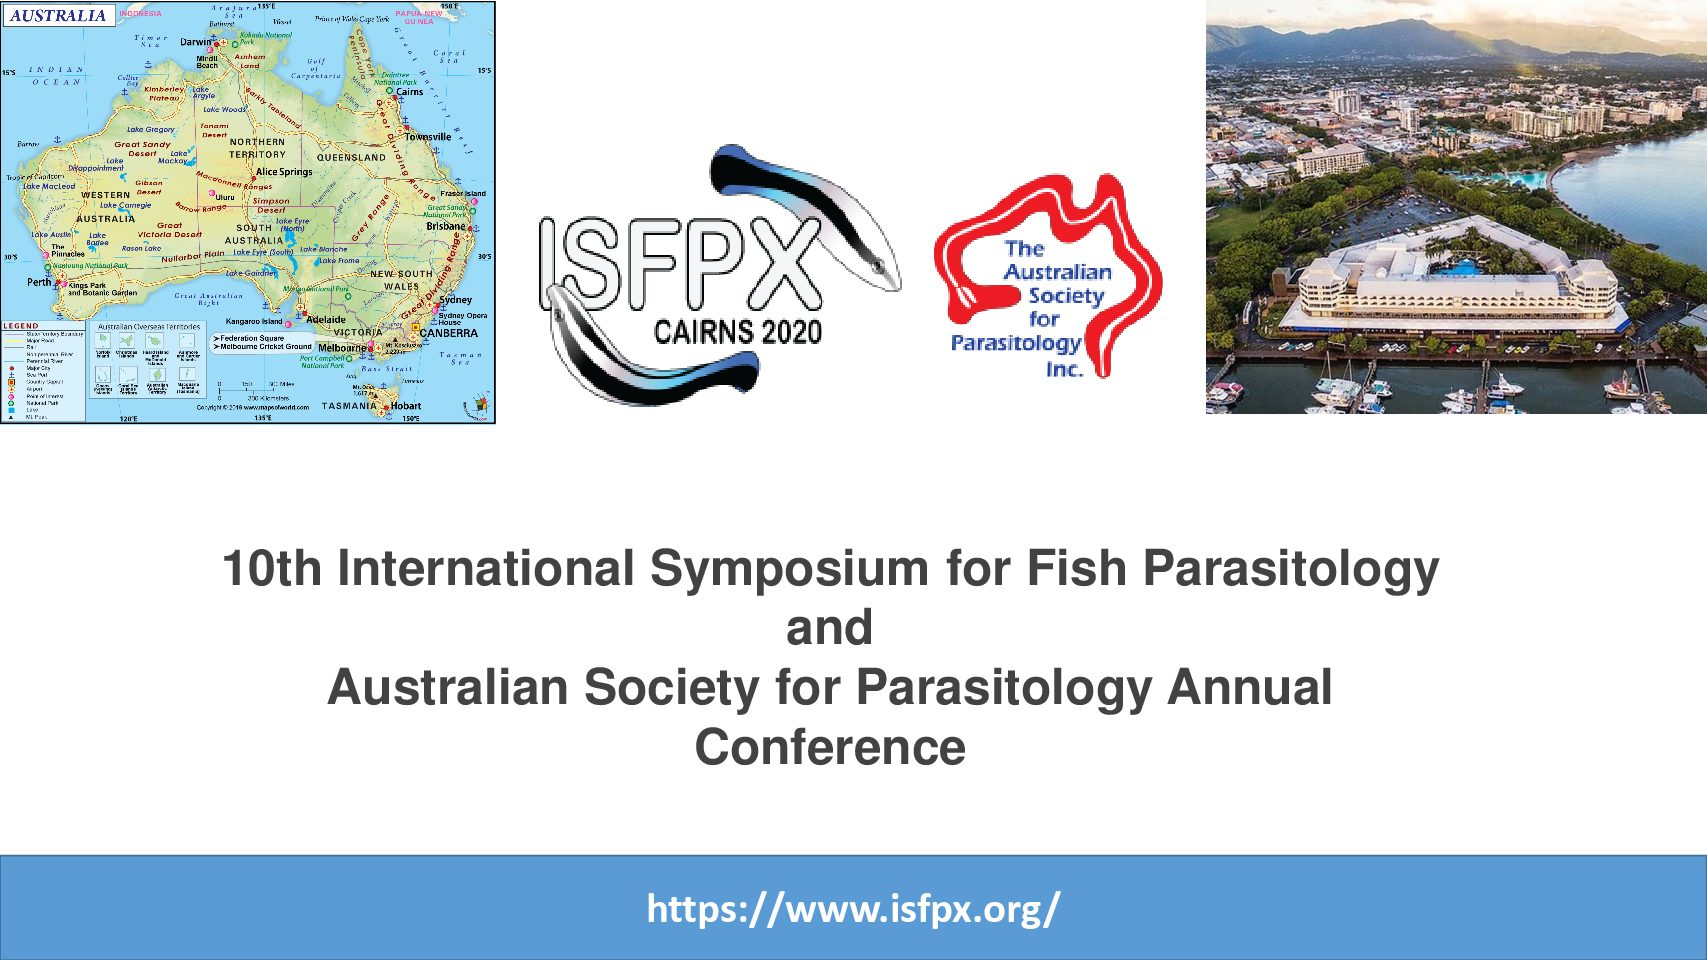 10th International Symposium on Fish Parasitology